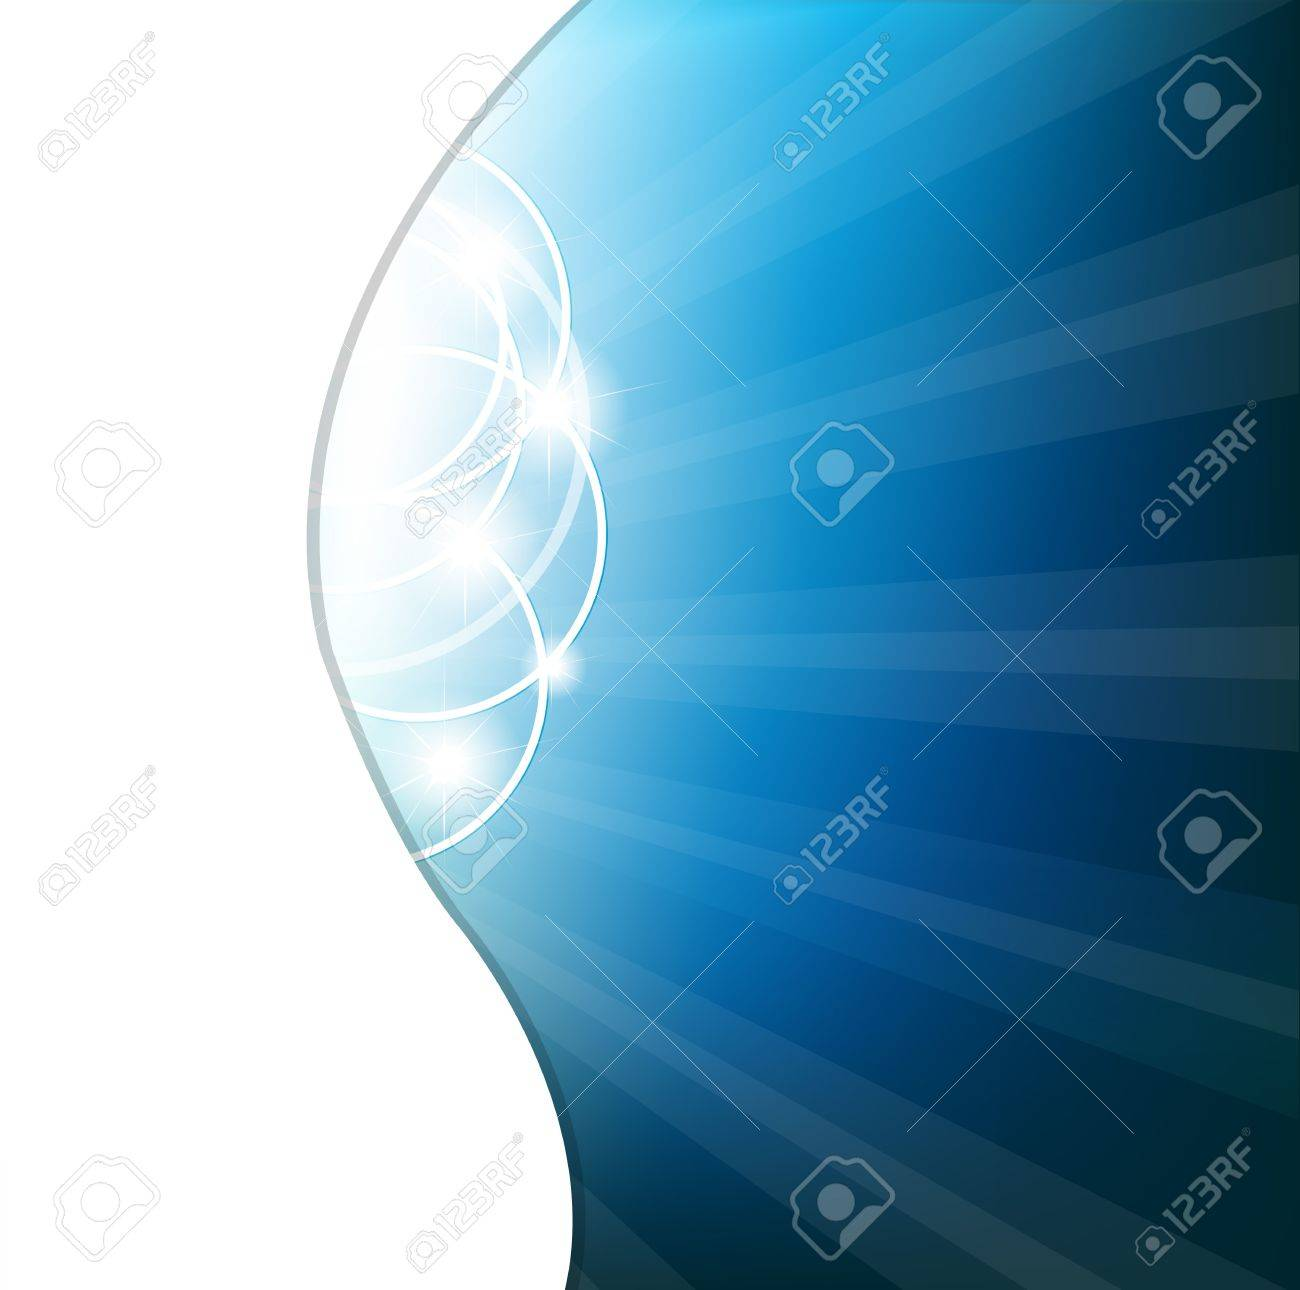 Abstract Blue Background Stock Vector - 10136070